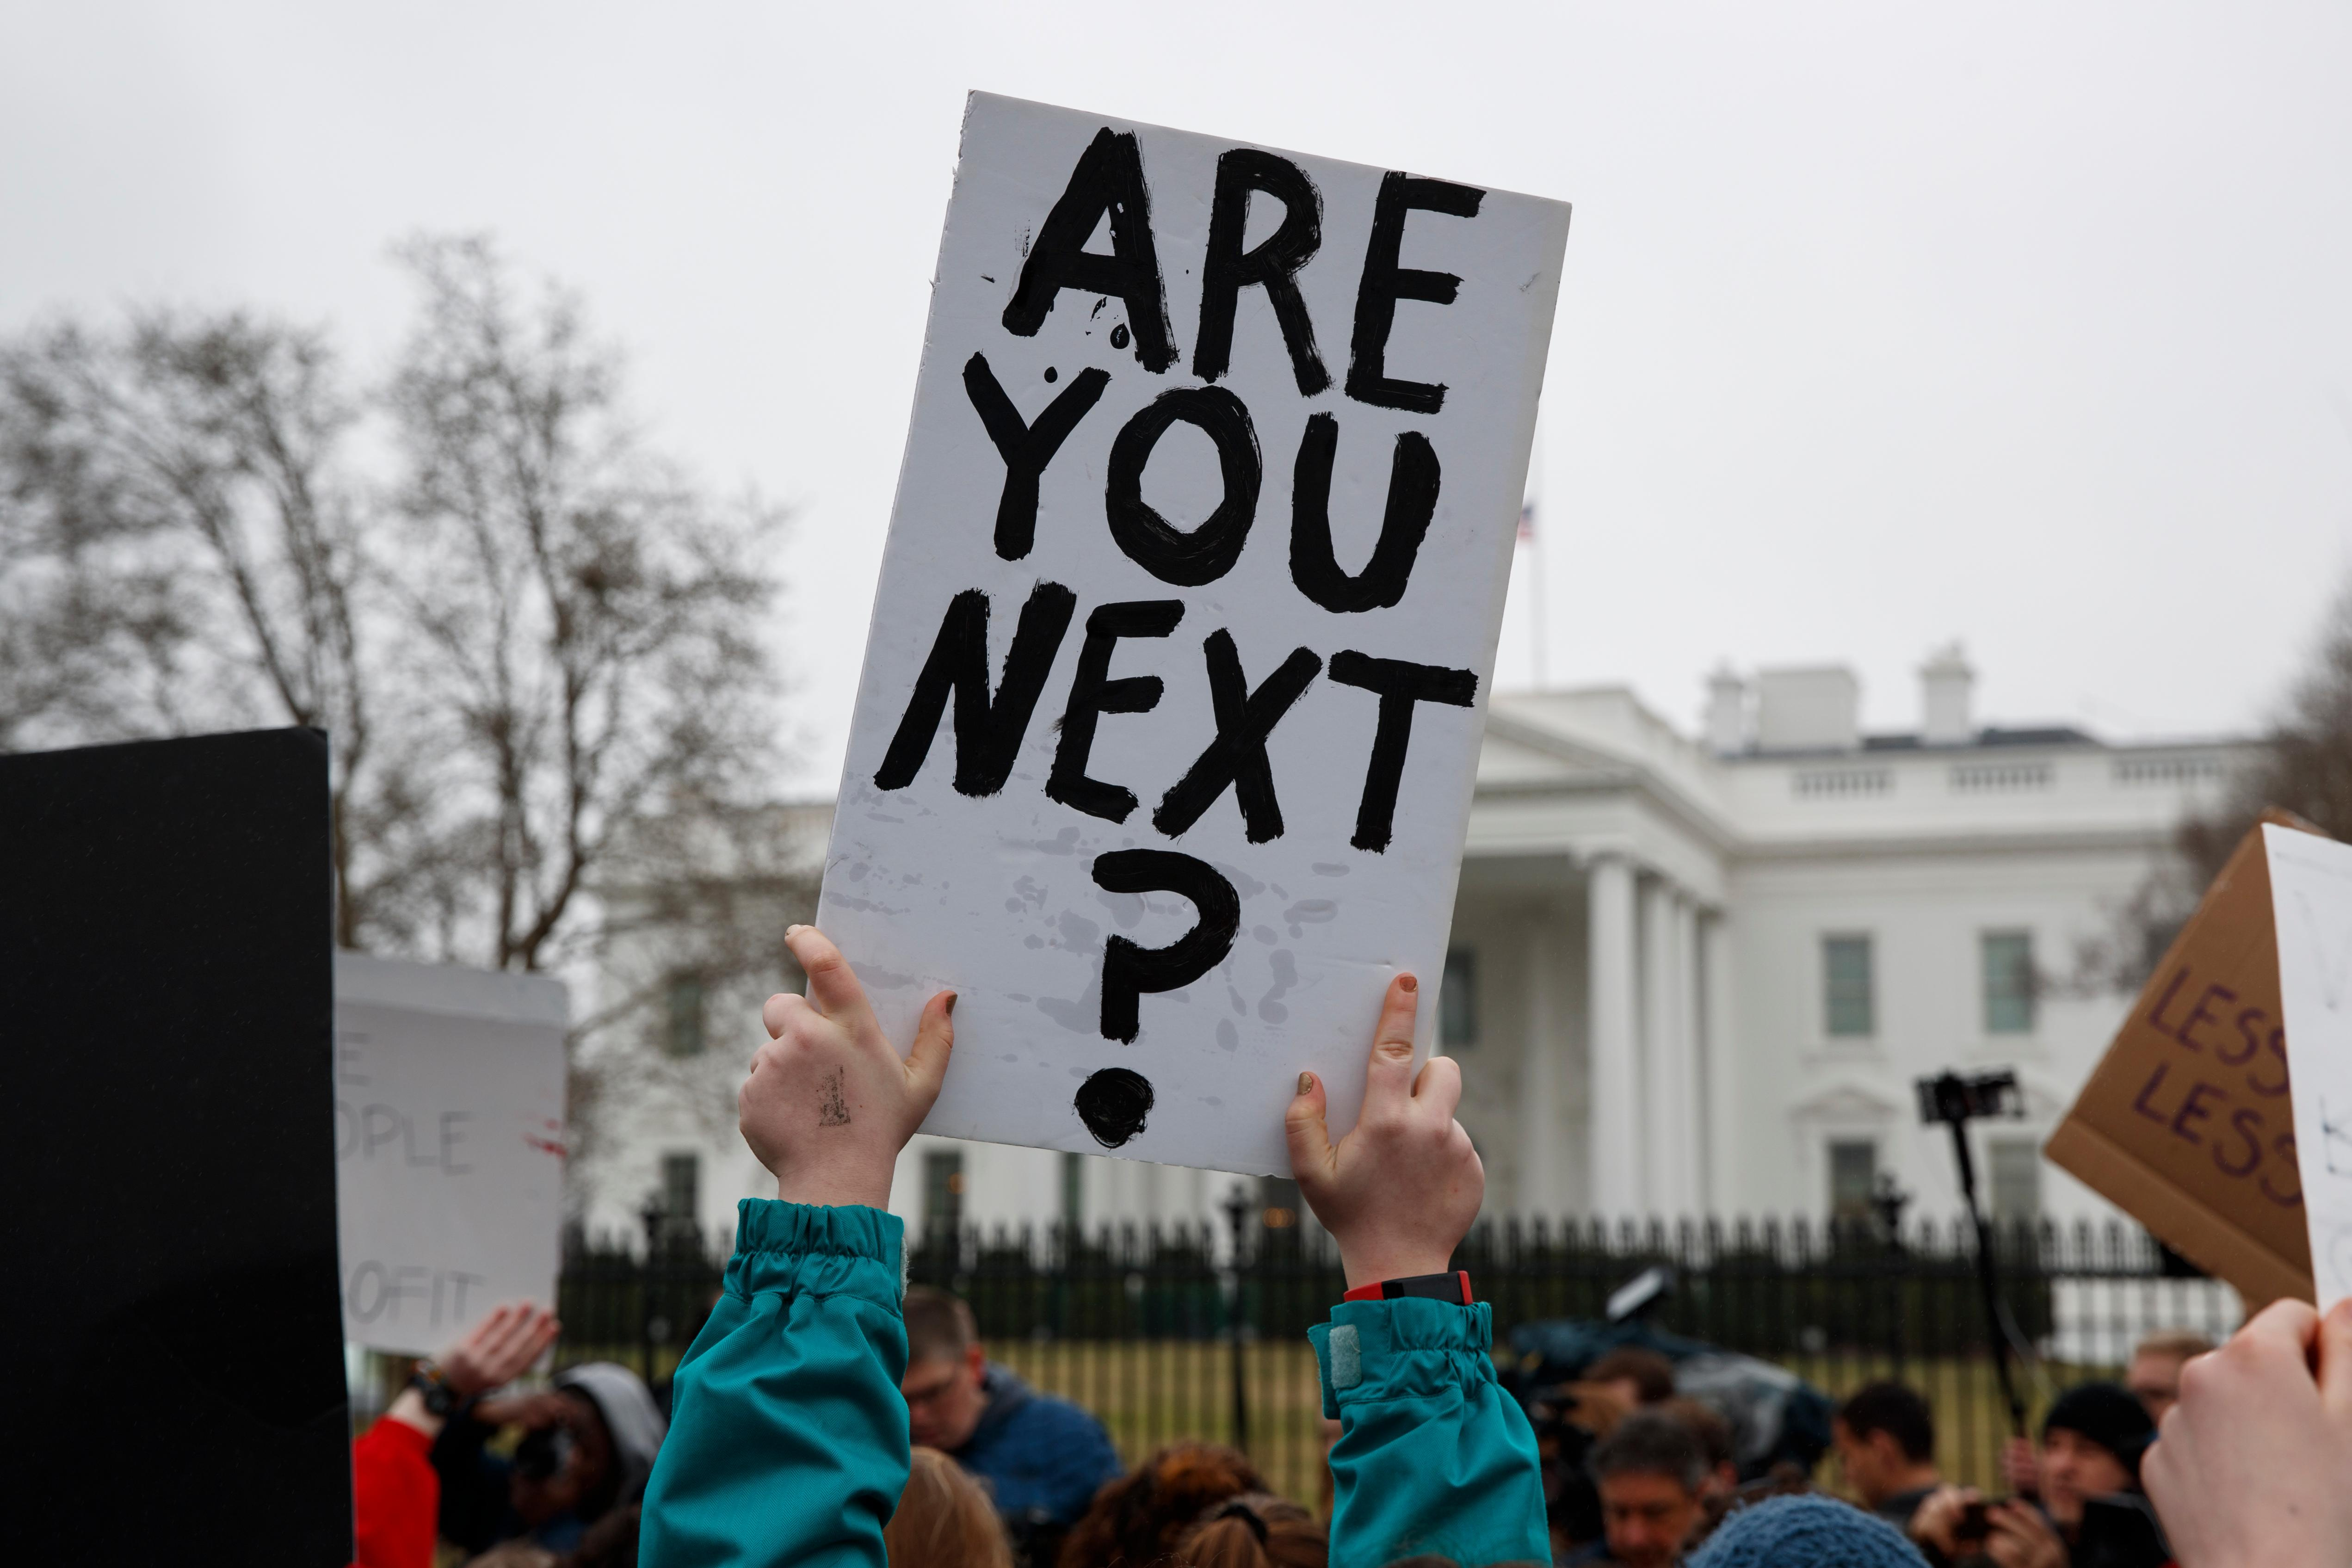 Demonstrators hold signs during a protest in favor of gun control reform in front of the White House, Monday, Feb. 19, 2018, in Washington. (AP Photo/Evan Vucci)